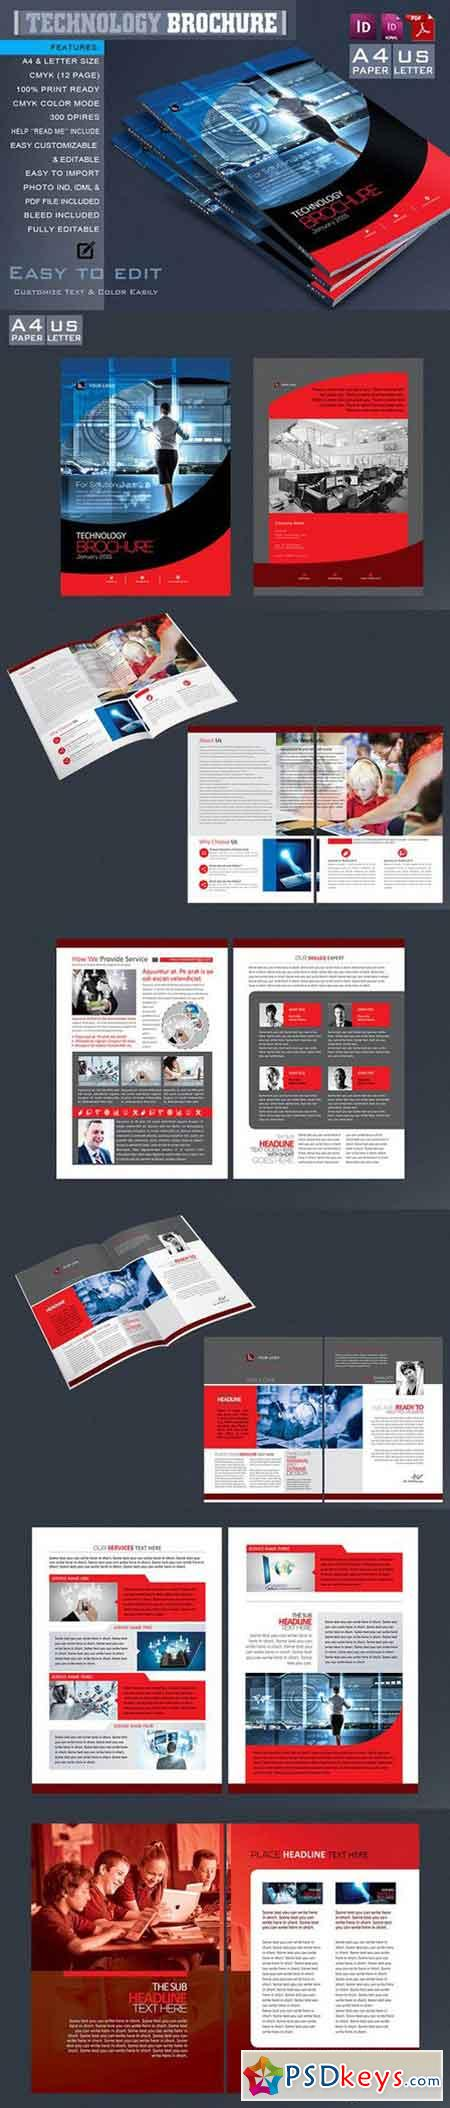 Technology Brochure Catalog Template 664173